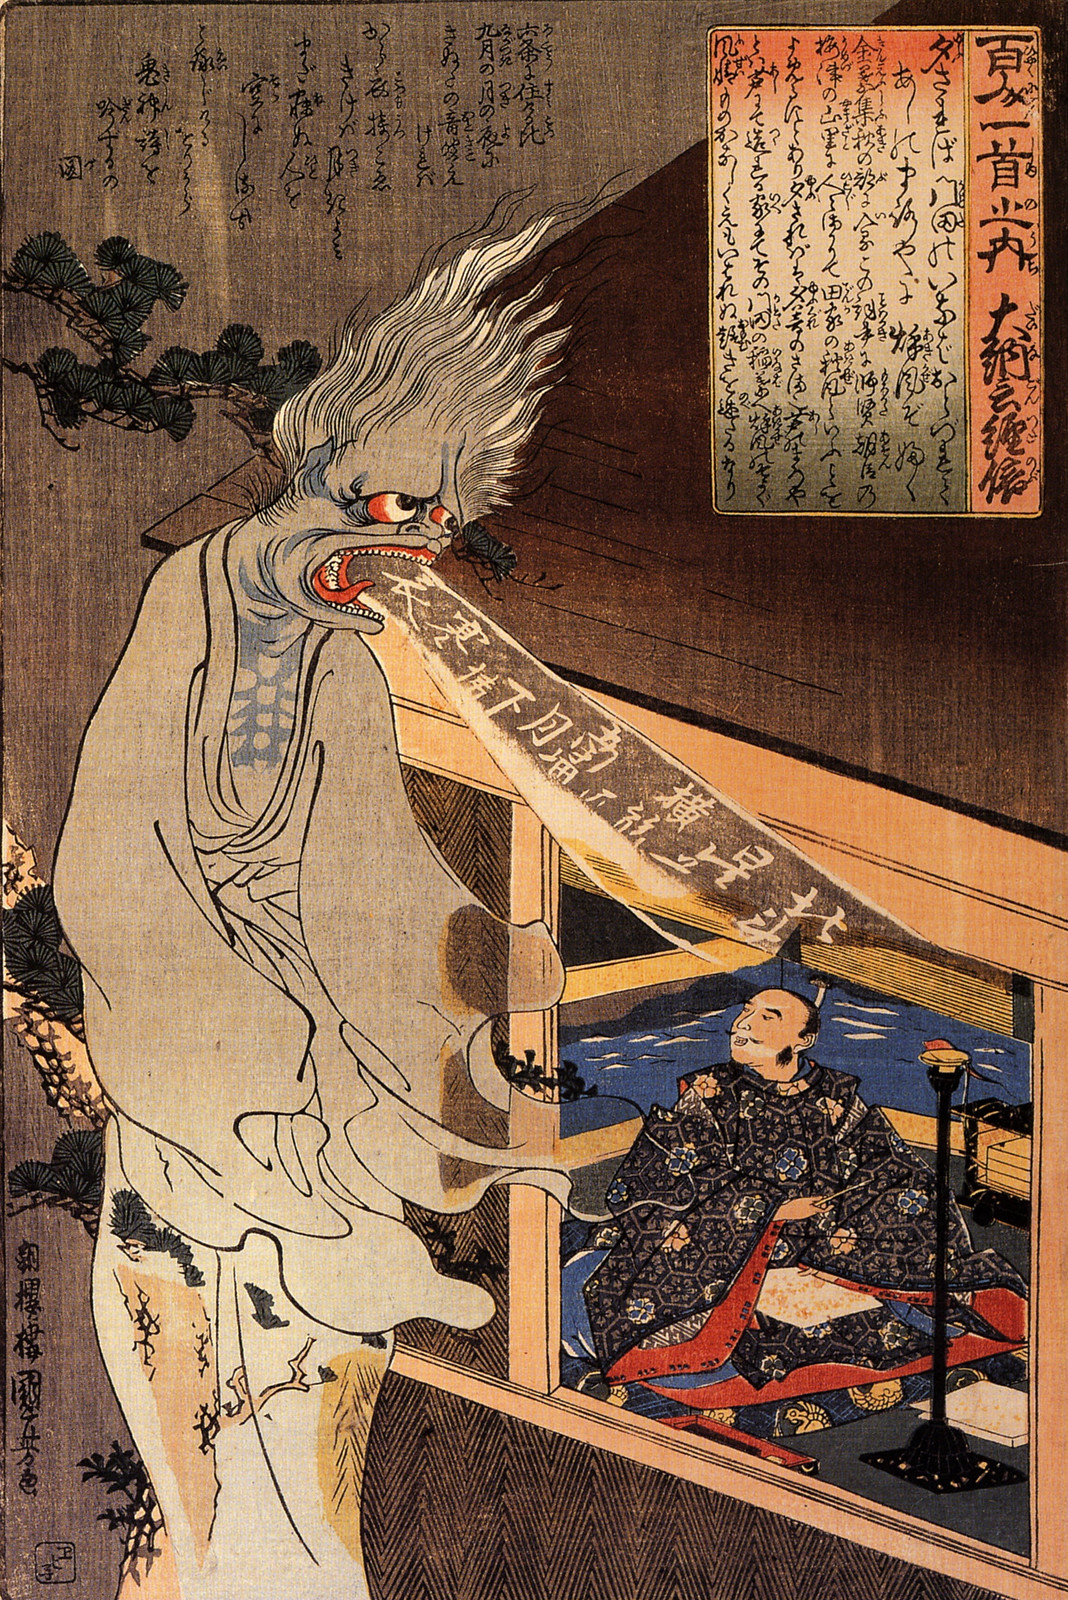 Utagawa Kuniyoshi - The Poet Dainagon Sees an Apparition, 1860 (version 2)